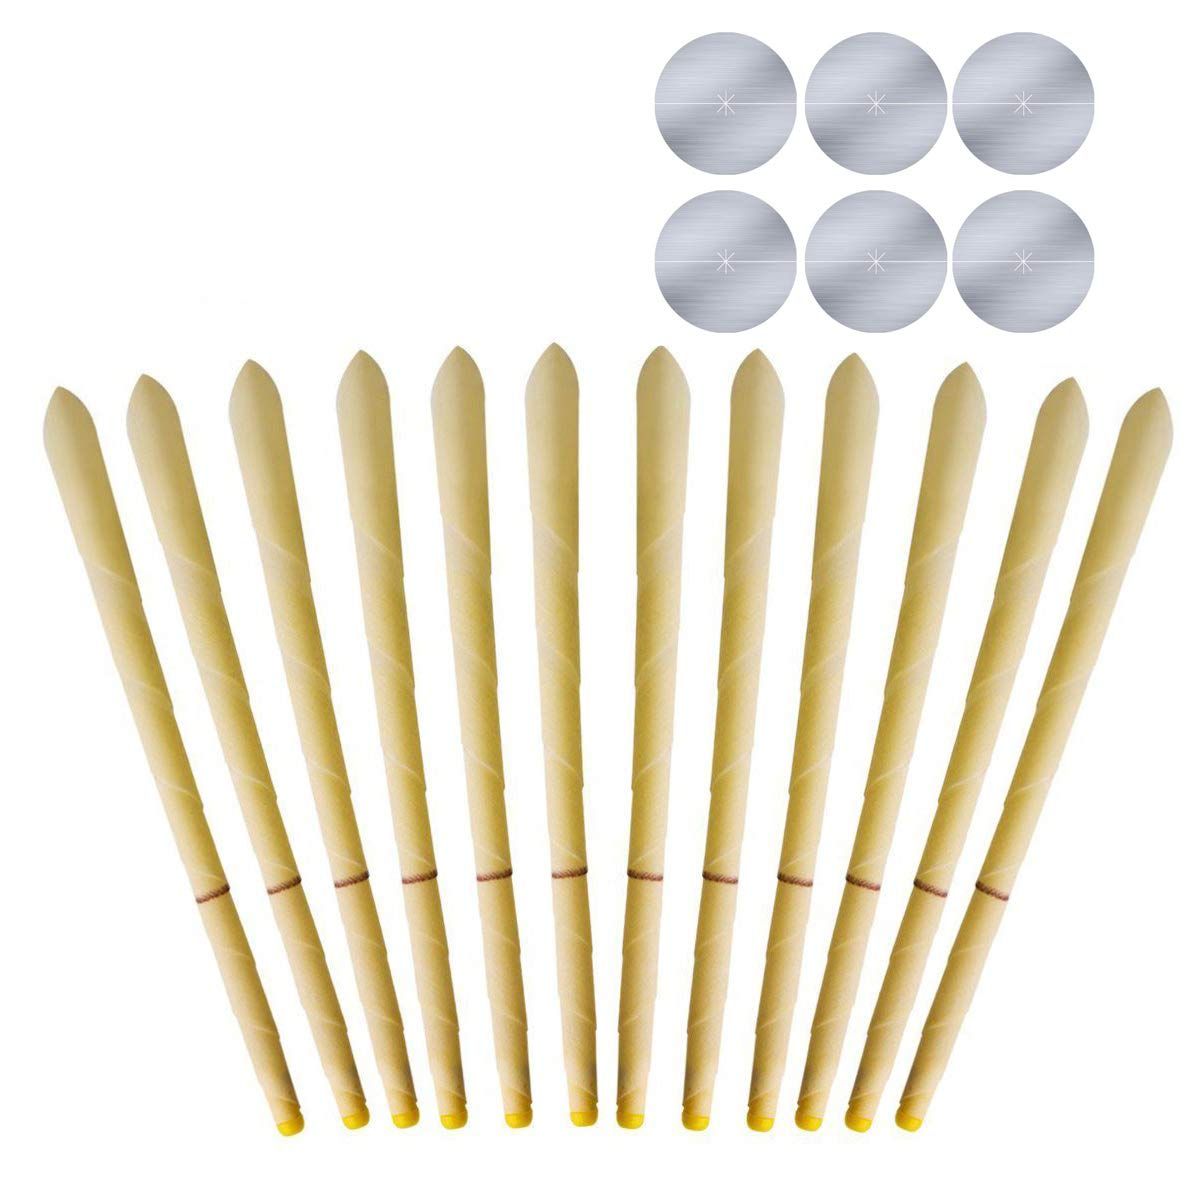 12pcs 100% Natural and Non-Toxic Beeswax Cone Ear Candle, Hollow Beeswax Earrings Health Care, 6 Protective Disks Included